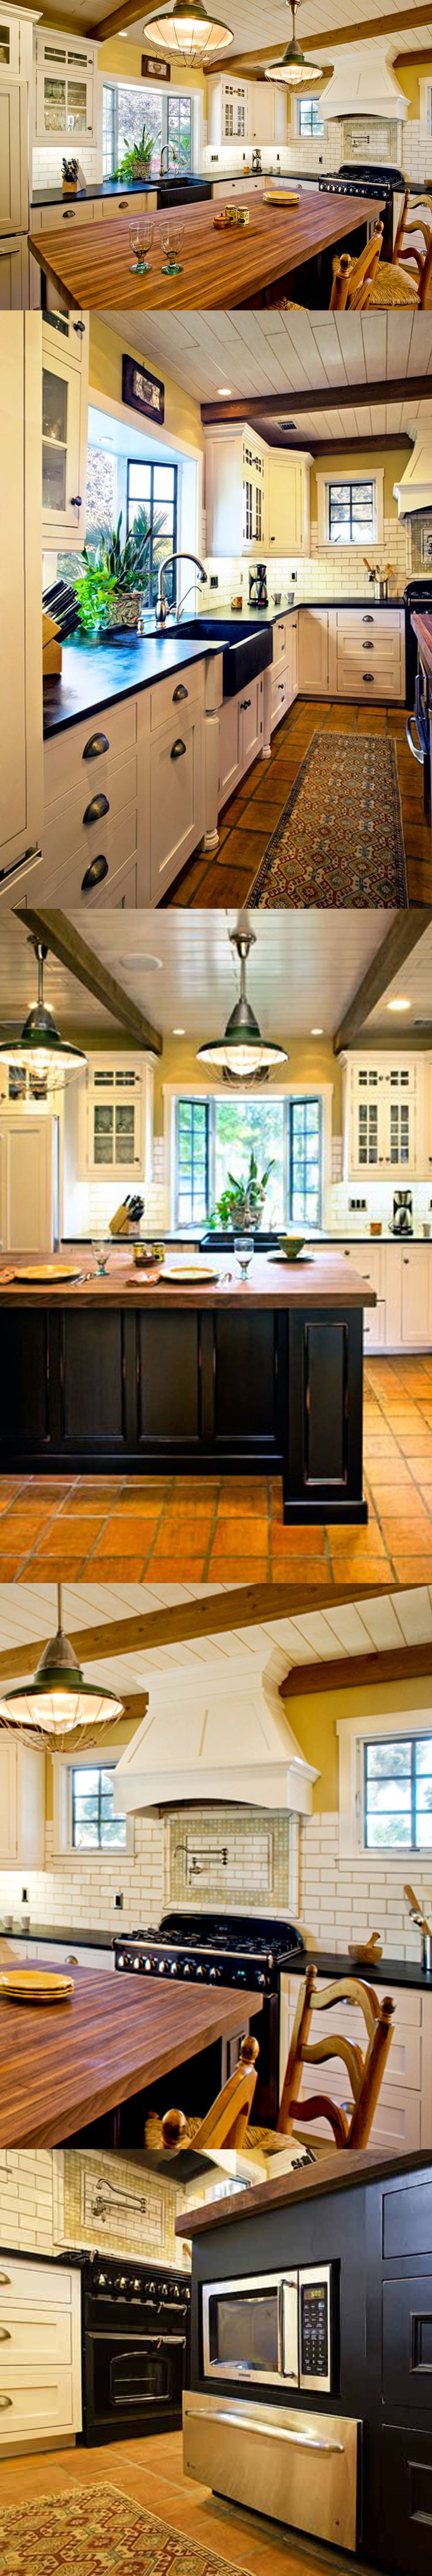 White Traditional Cottage Kitchen with Wood Countertop Kitchen Island and Subway Tile Backsplash, apron sink and kitchen island - Dura Supreme Cabinetry Kitchen Designed by Linda Williams from Hahka Kitchens.